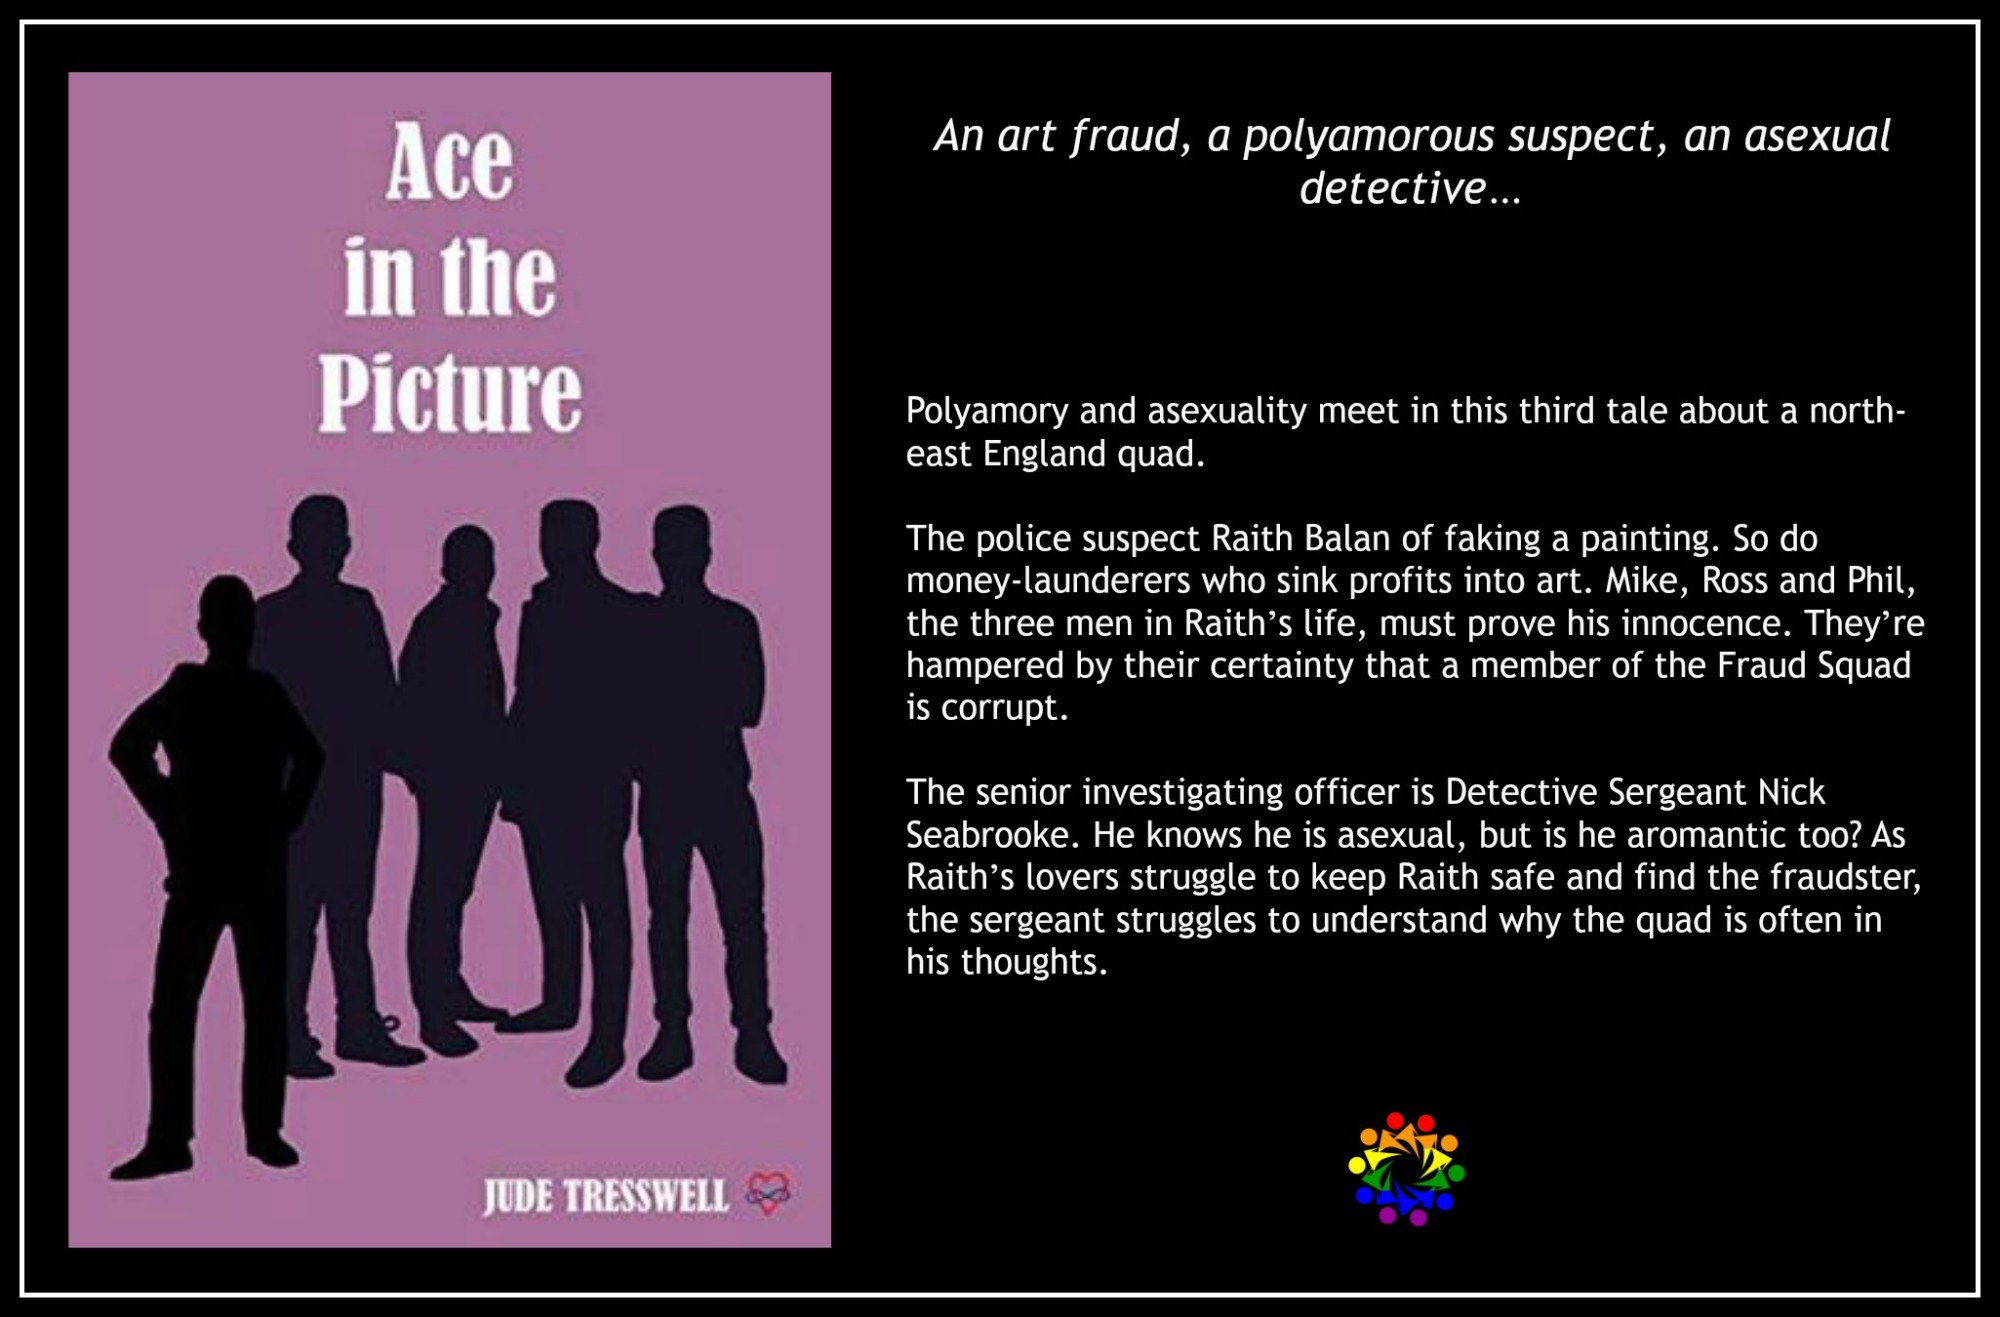 Ace in the Picture Jude Tresswell